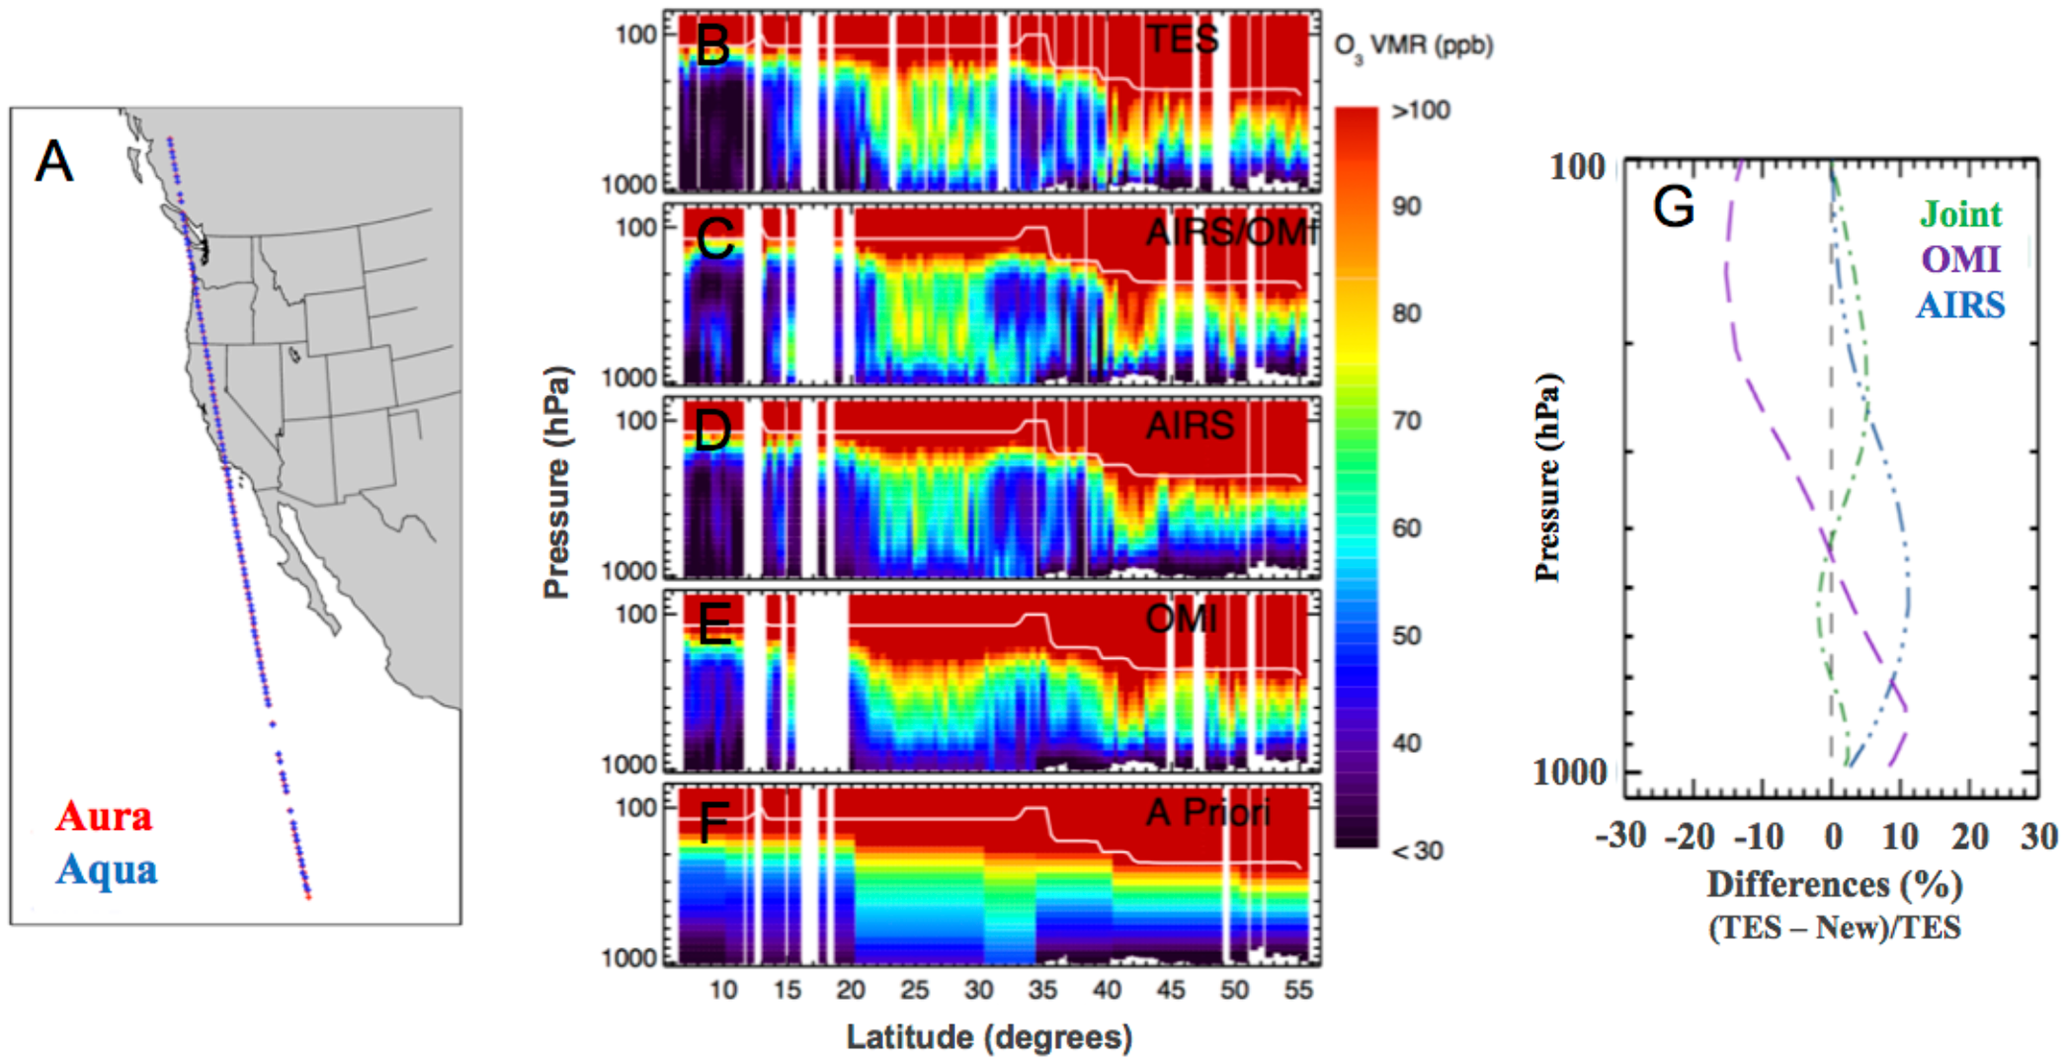 AMT - Retrievals of tropospheric ozone profiles from the synergism